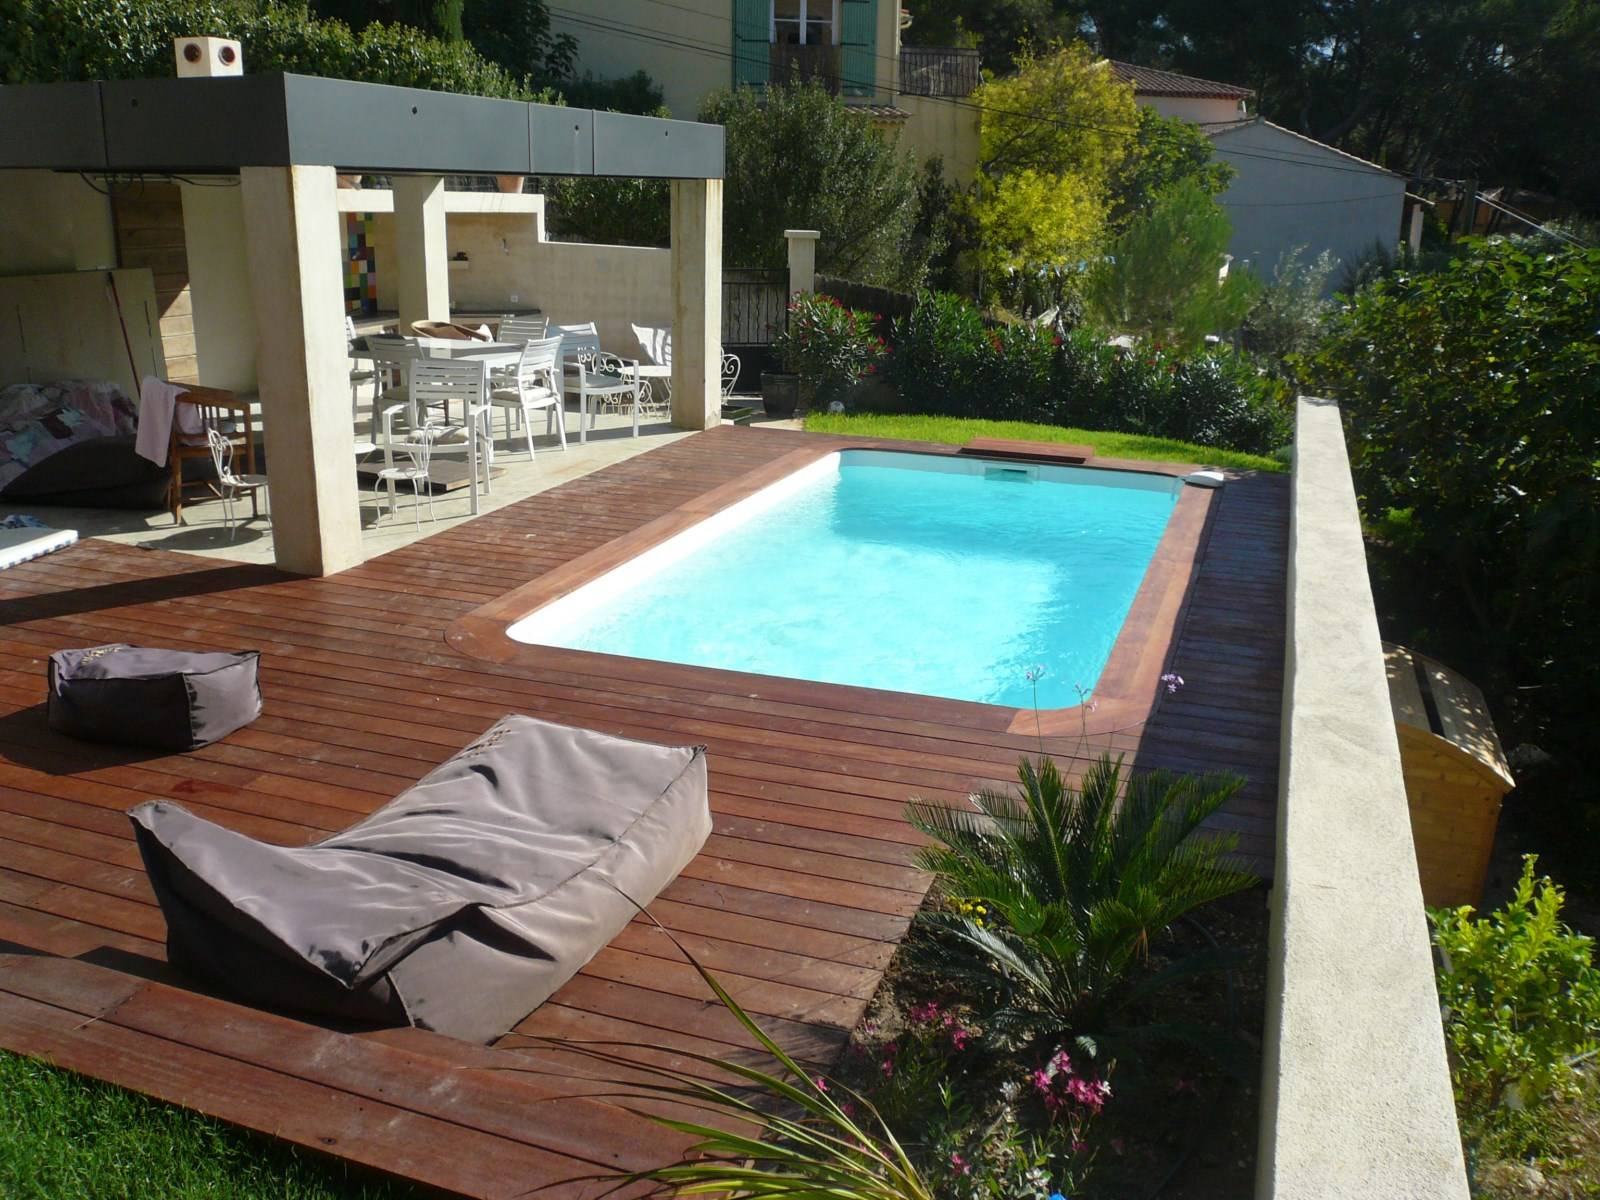 Piscine enterree prix id es de design d 39 int rieur for Cout installation piscine